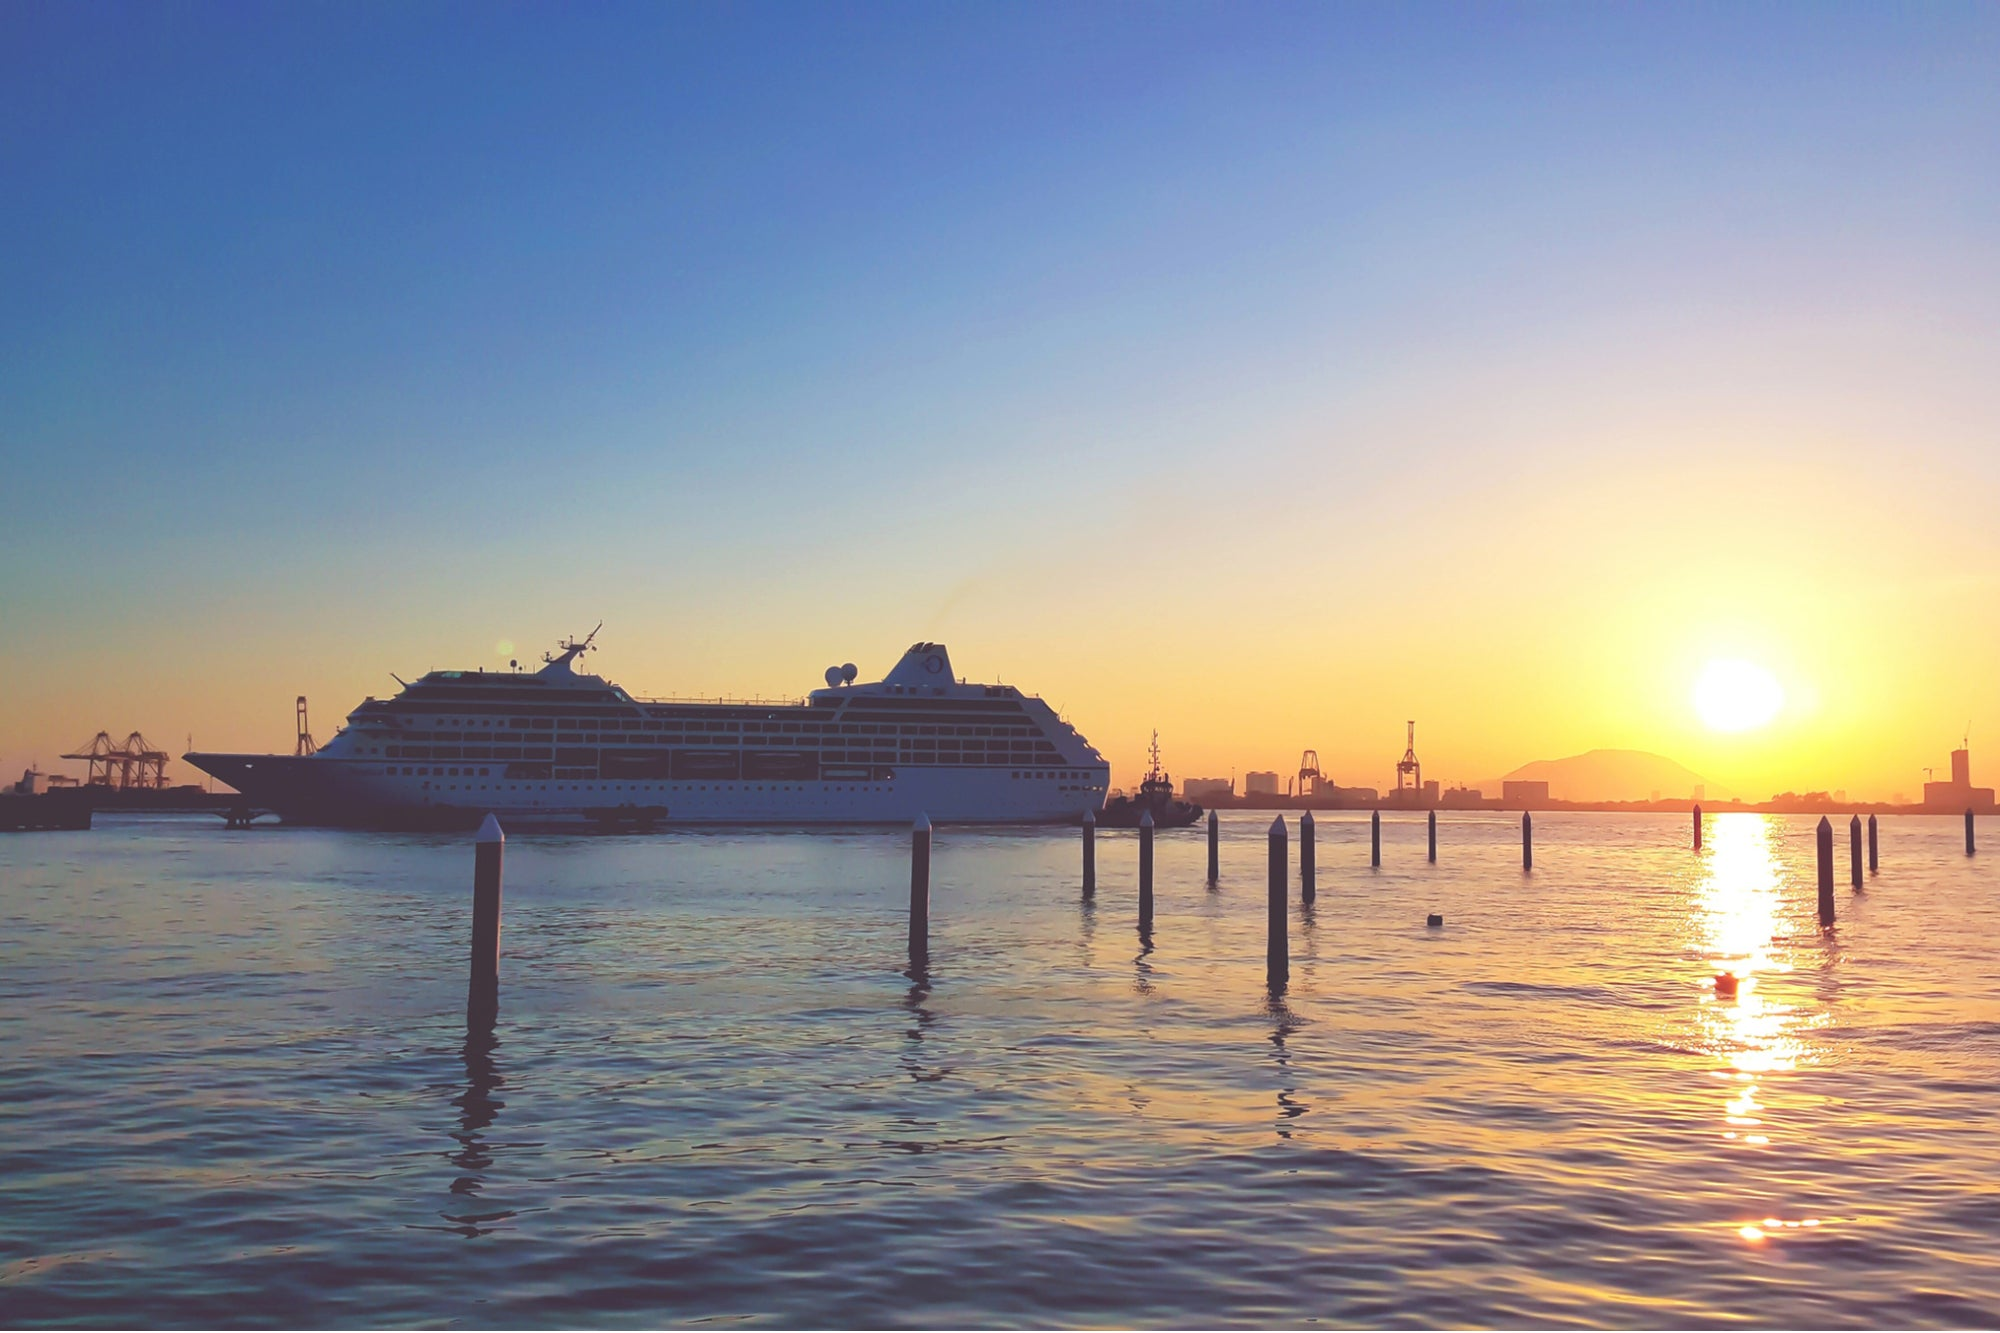 Selling Cruises During a Lockdown? Here's How One Travel Agent Does It.